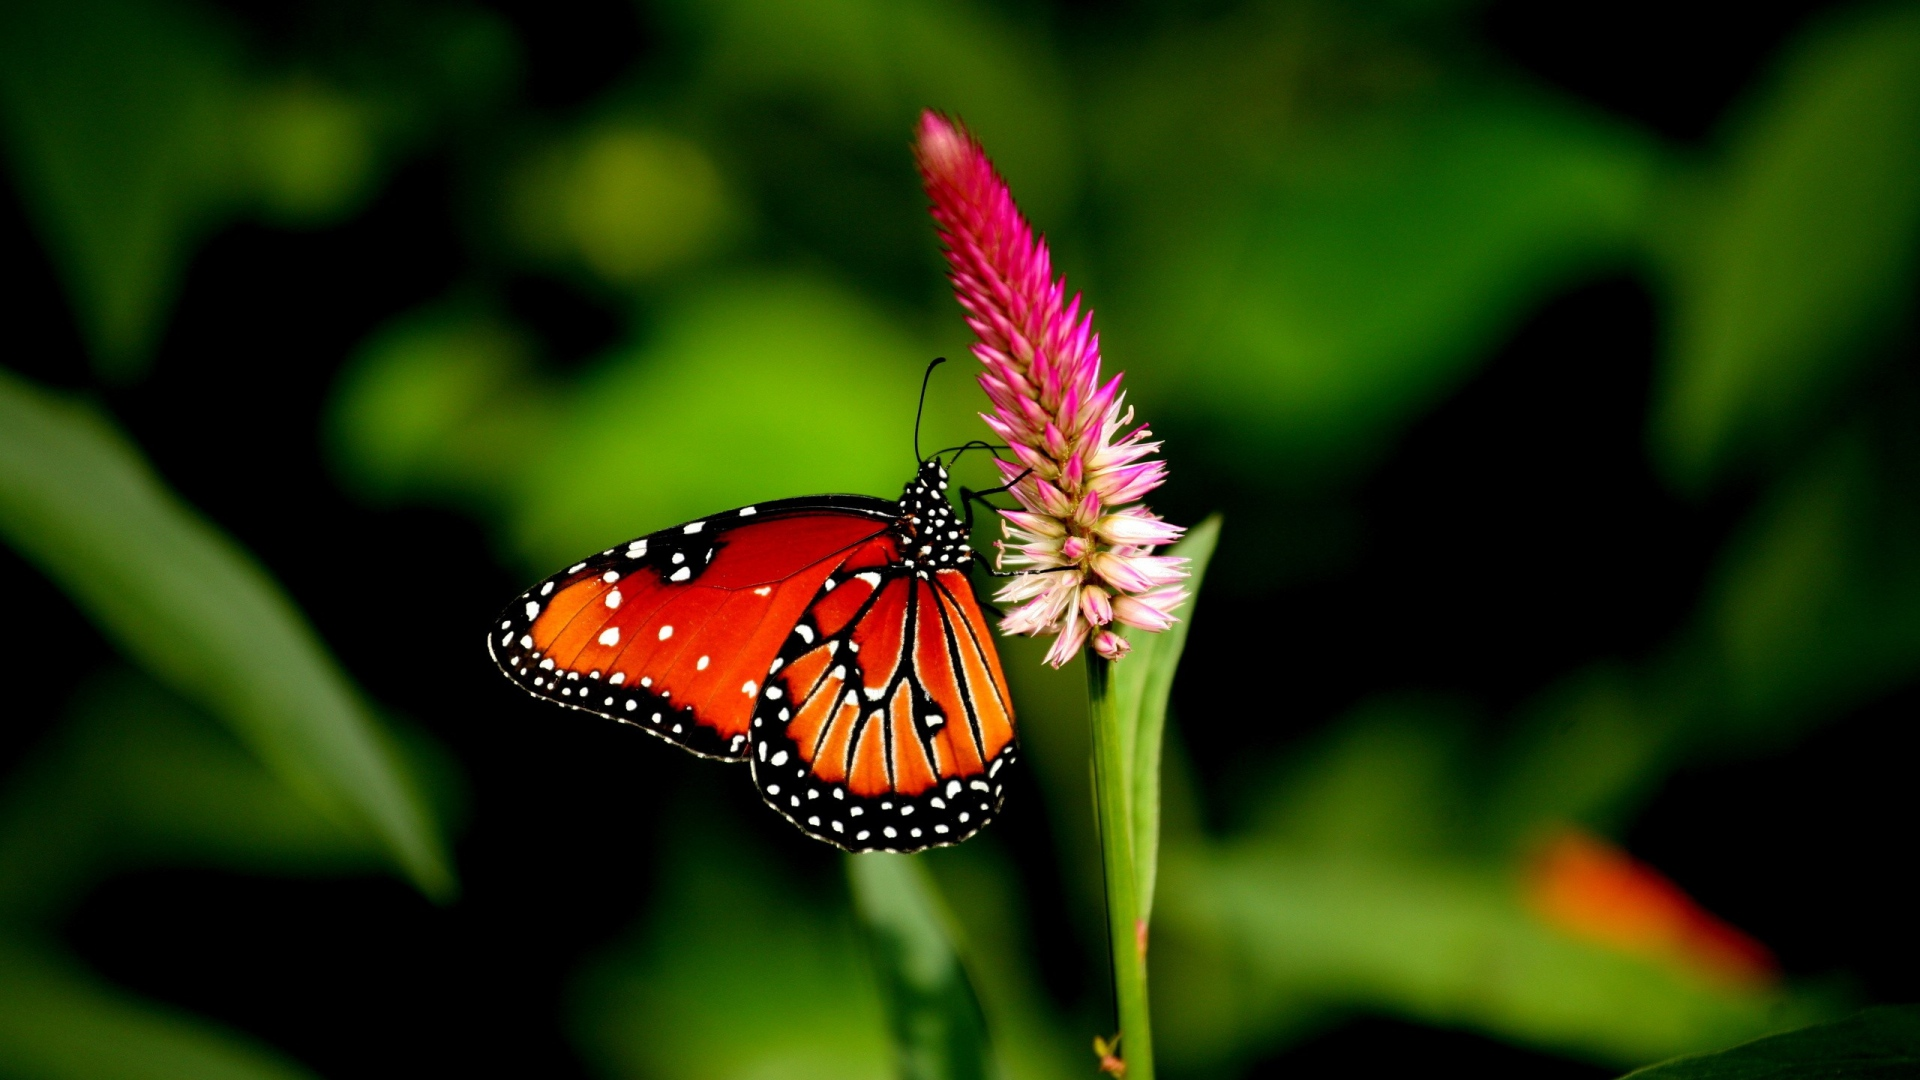 Butterfly and Flower Pictures 22 HD Images Wallpapers